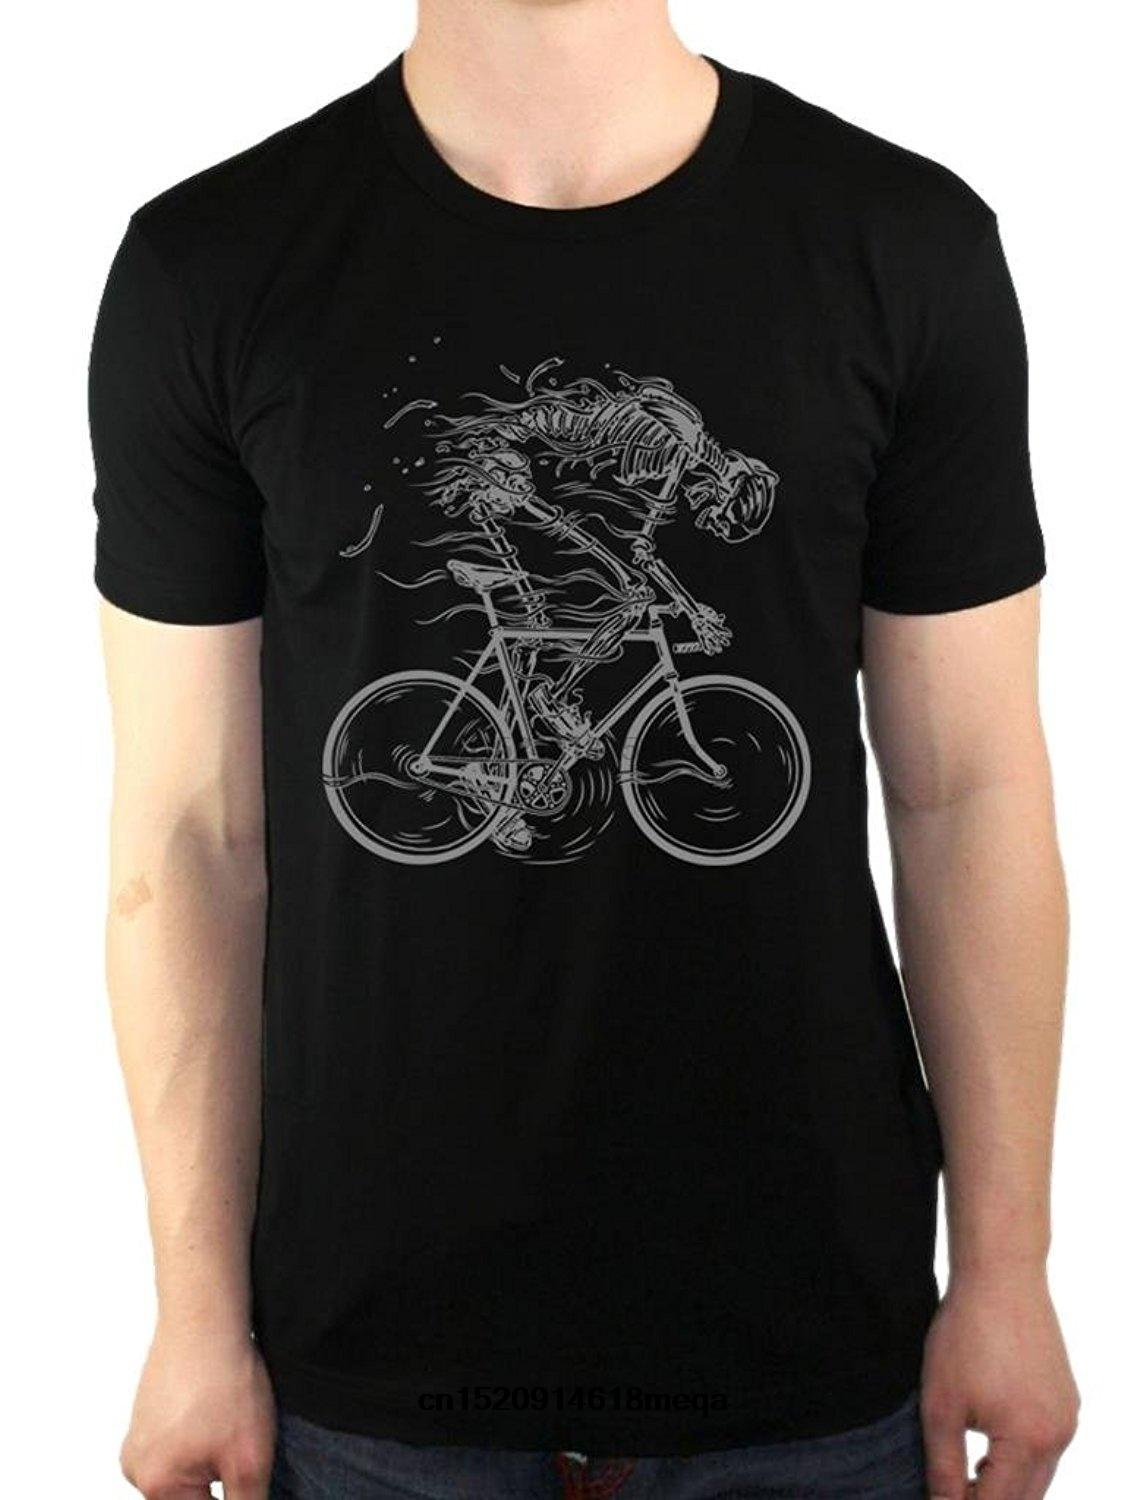 t shirt Skeleton Cycling Bicycle Bone bikes Fixie Men Cotton Casual Cool Short Sleeve Tops T-Shirt